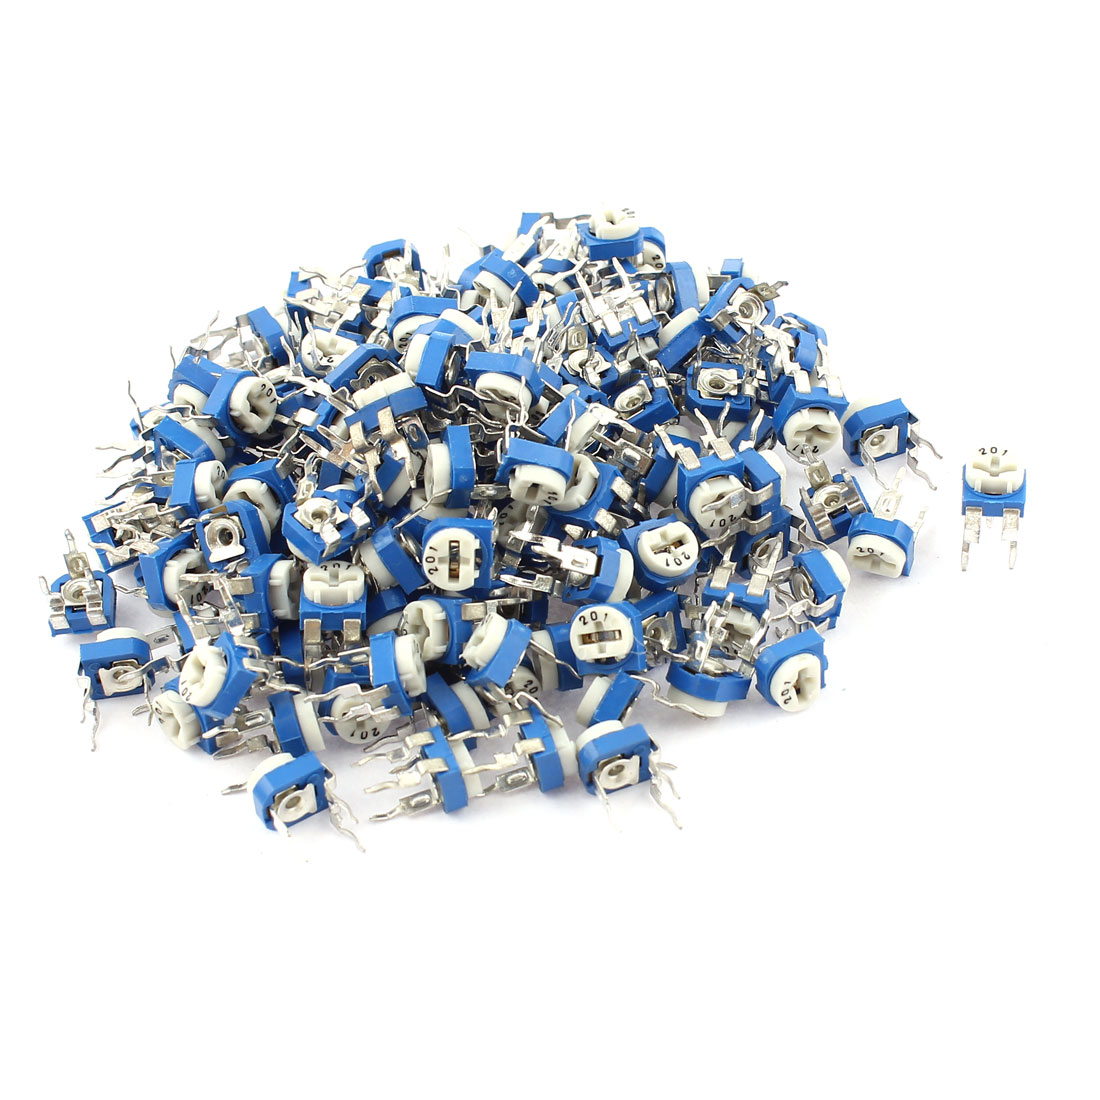 150Pcs 200 ohm Vertical PCB Preset Variable Resistor Trimmer Potentiometer Blue